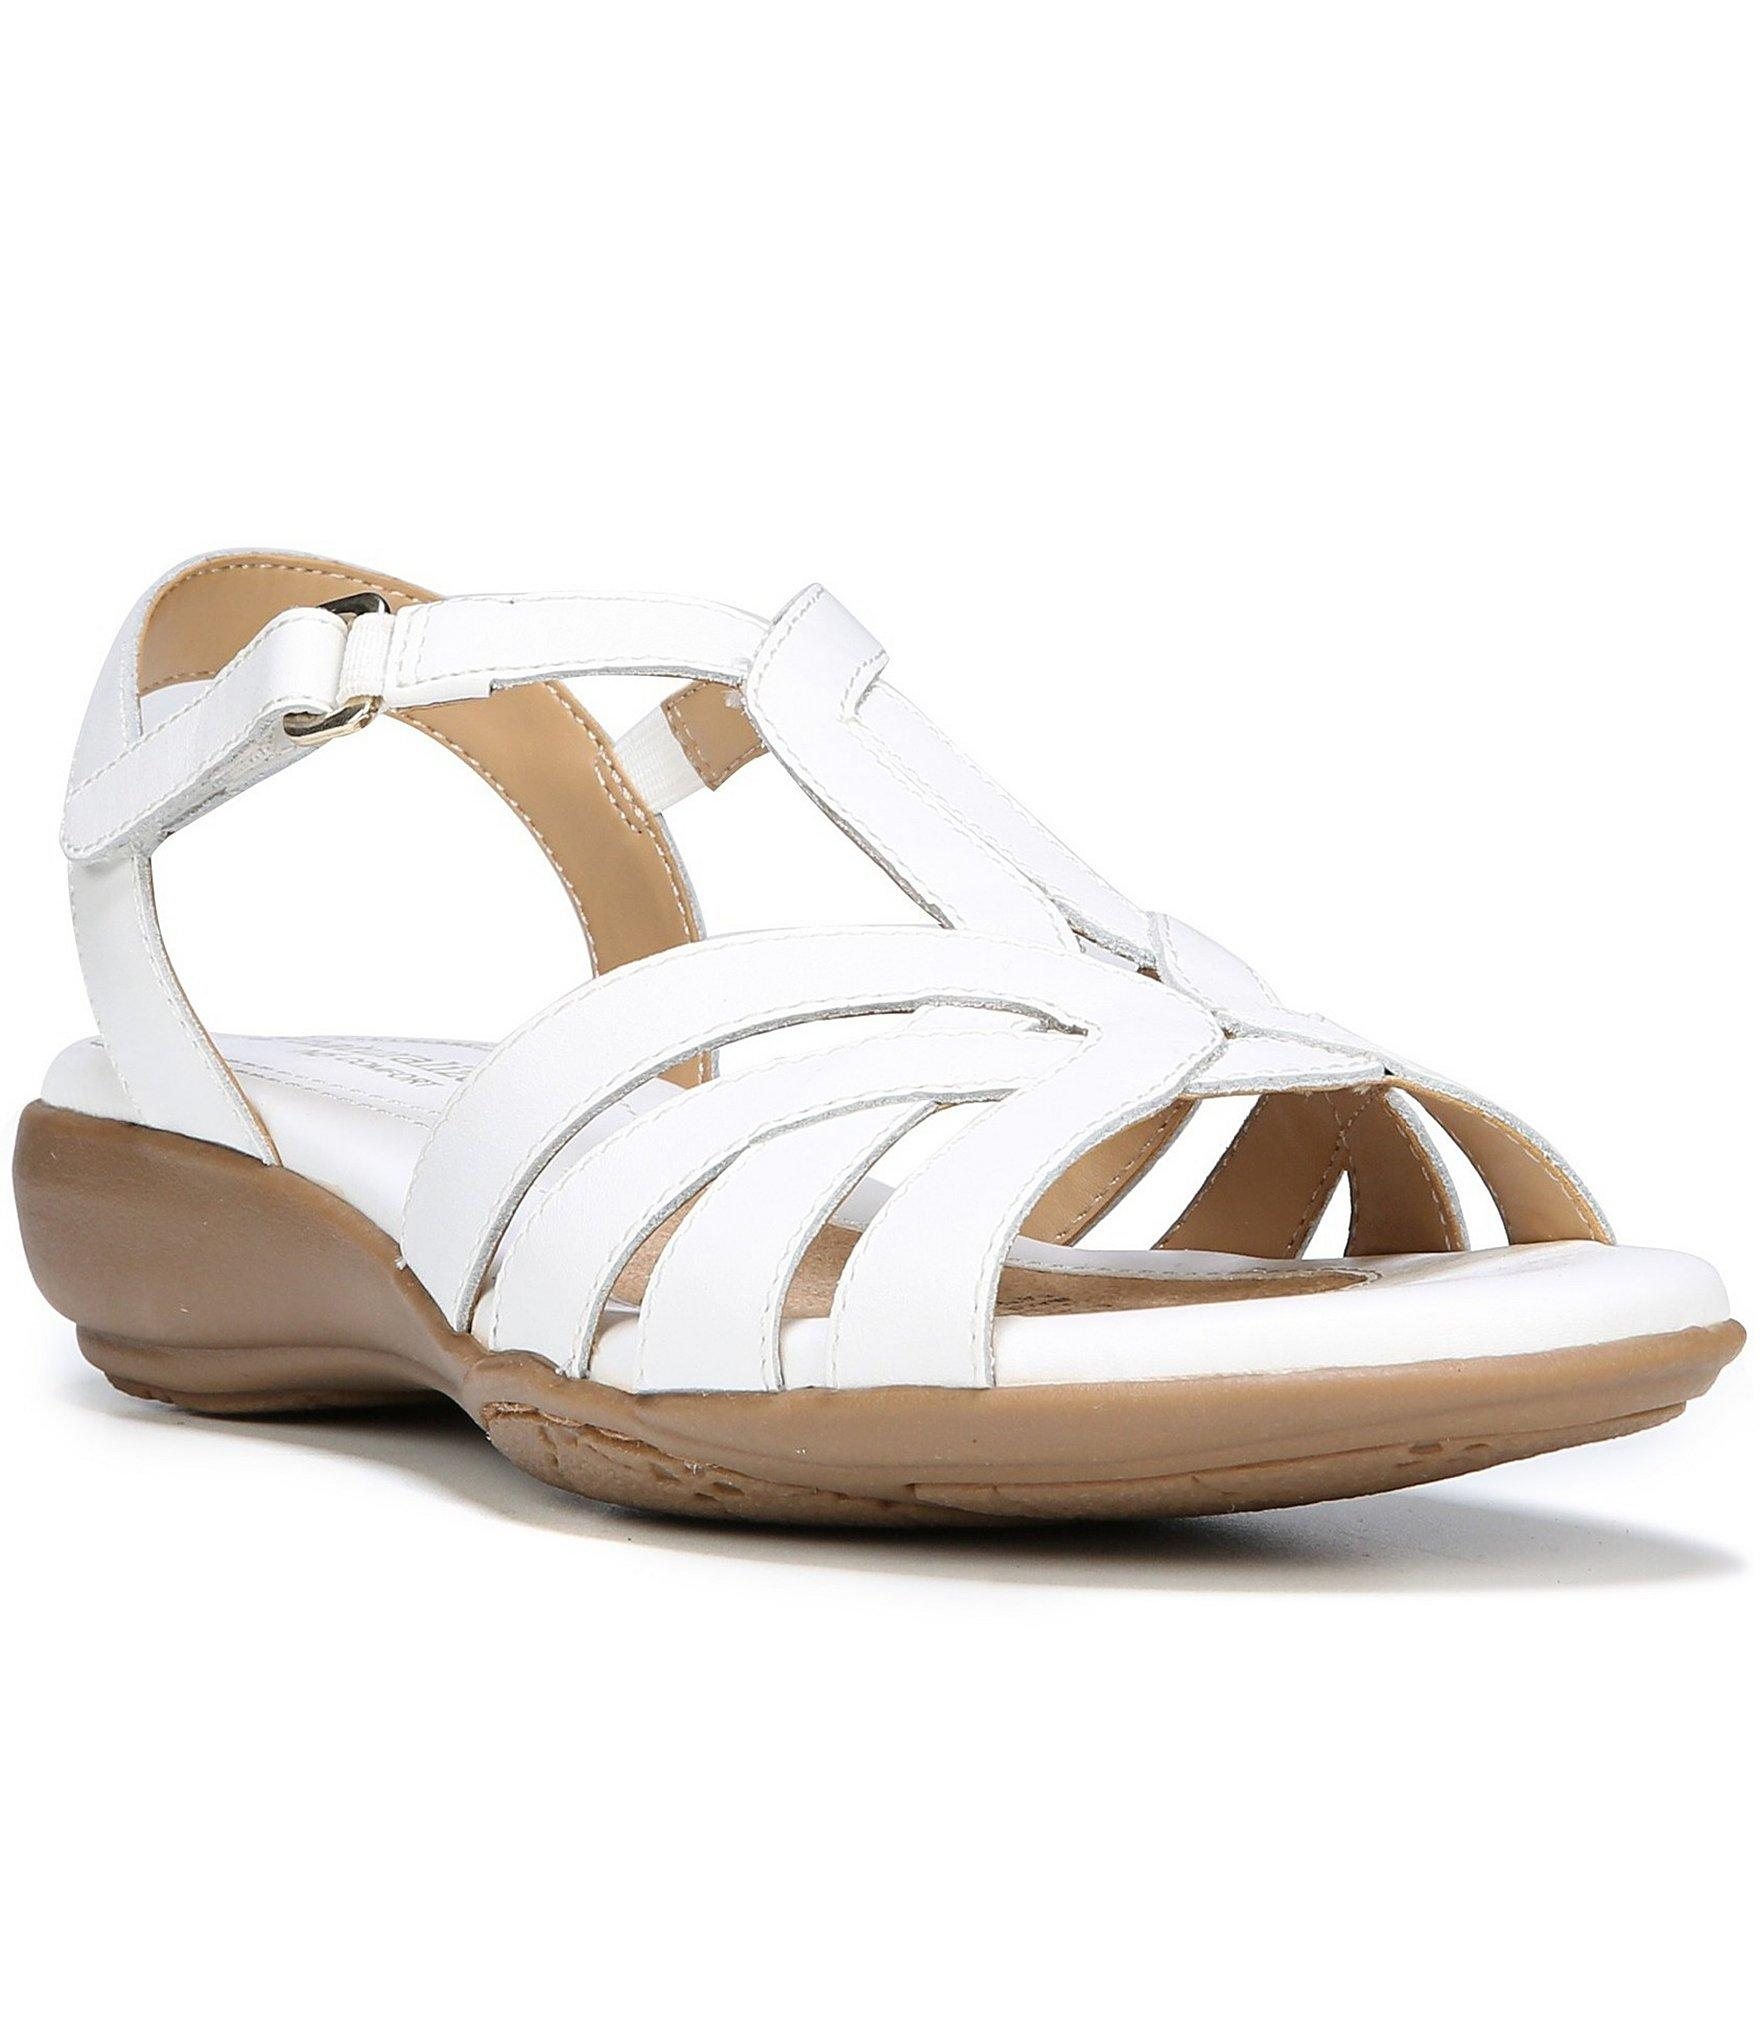 d227c8e528ac Lyst - Naturalizer Canary Sandals in White